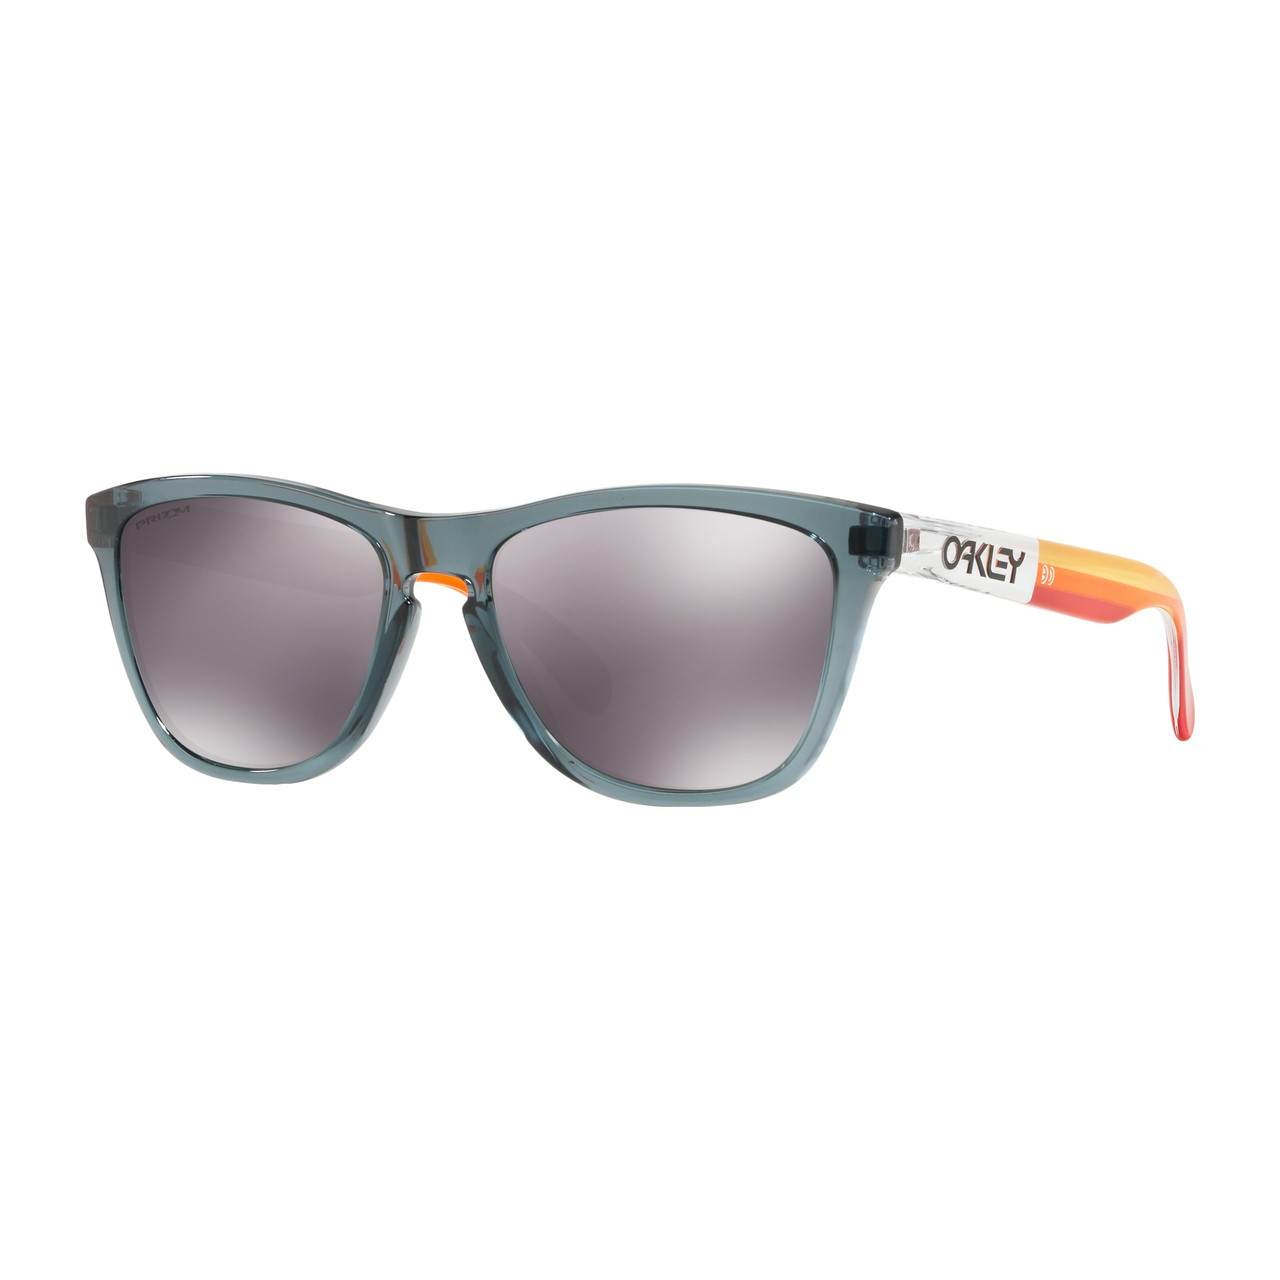 e94d040697 Oakley Sunglasses - Frogskins Prizm Grips Collection - Crystal Black Prizm  Black - Surf and Dirt